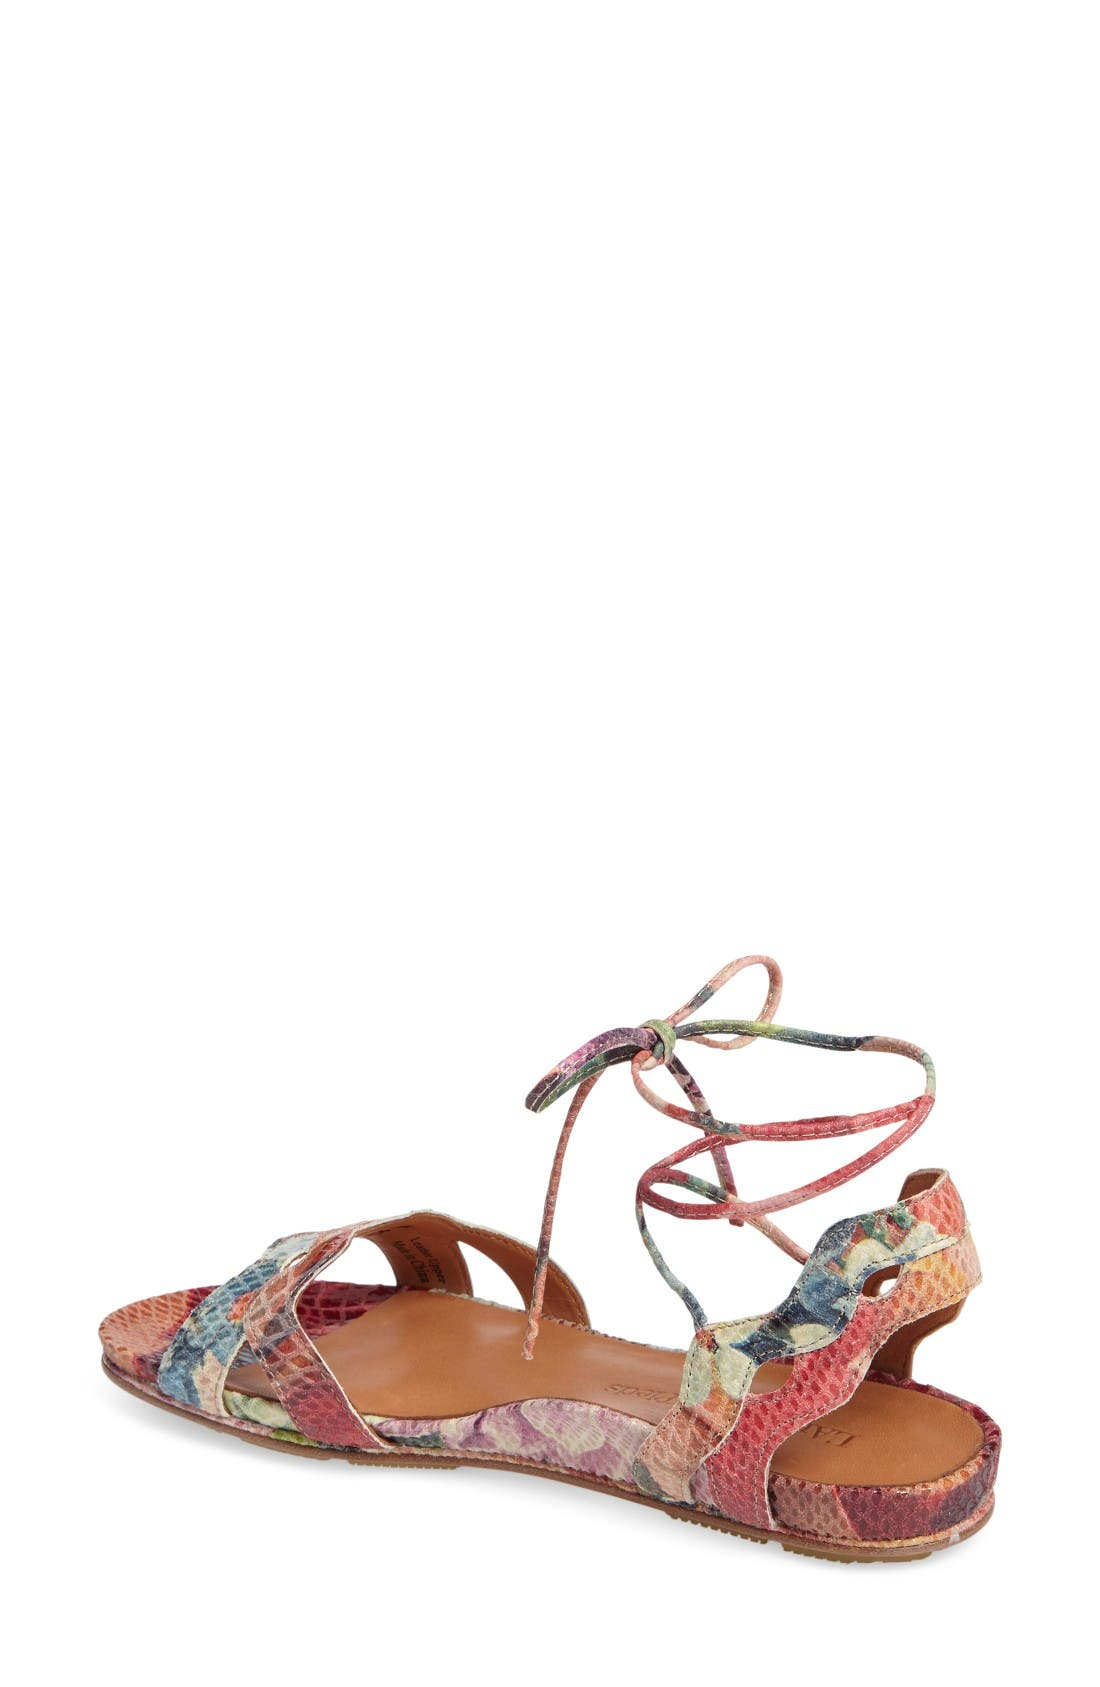 Darrylynn Wraparound Lace-Up Sandal,                             Alternate thumbnail 2, color,                             Bright Multi Printed Leather